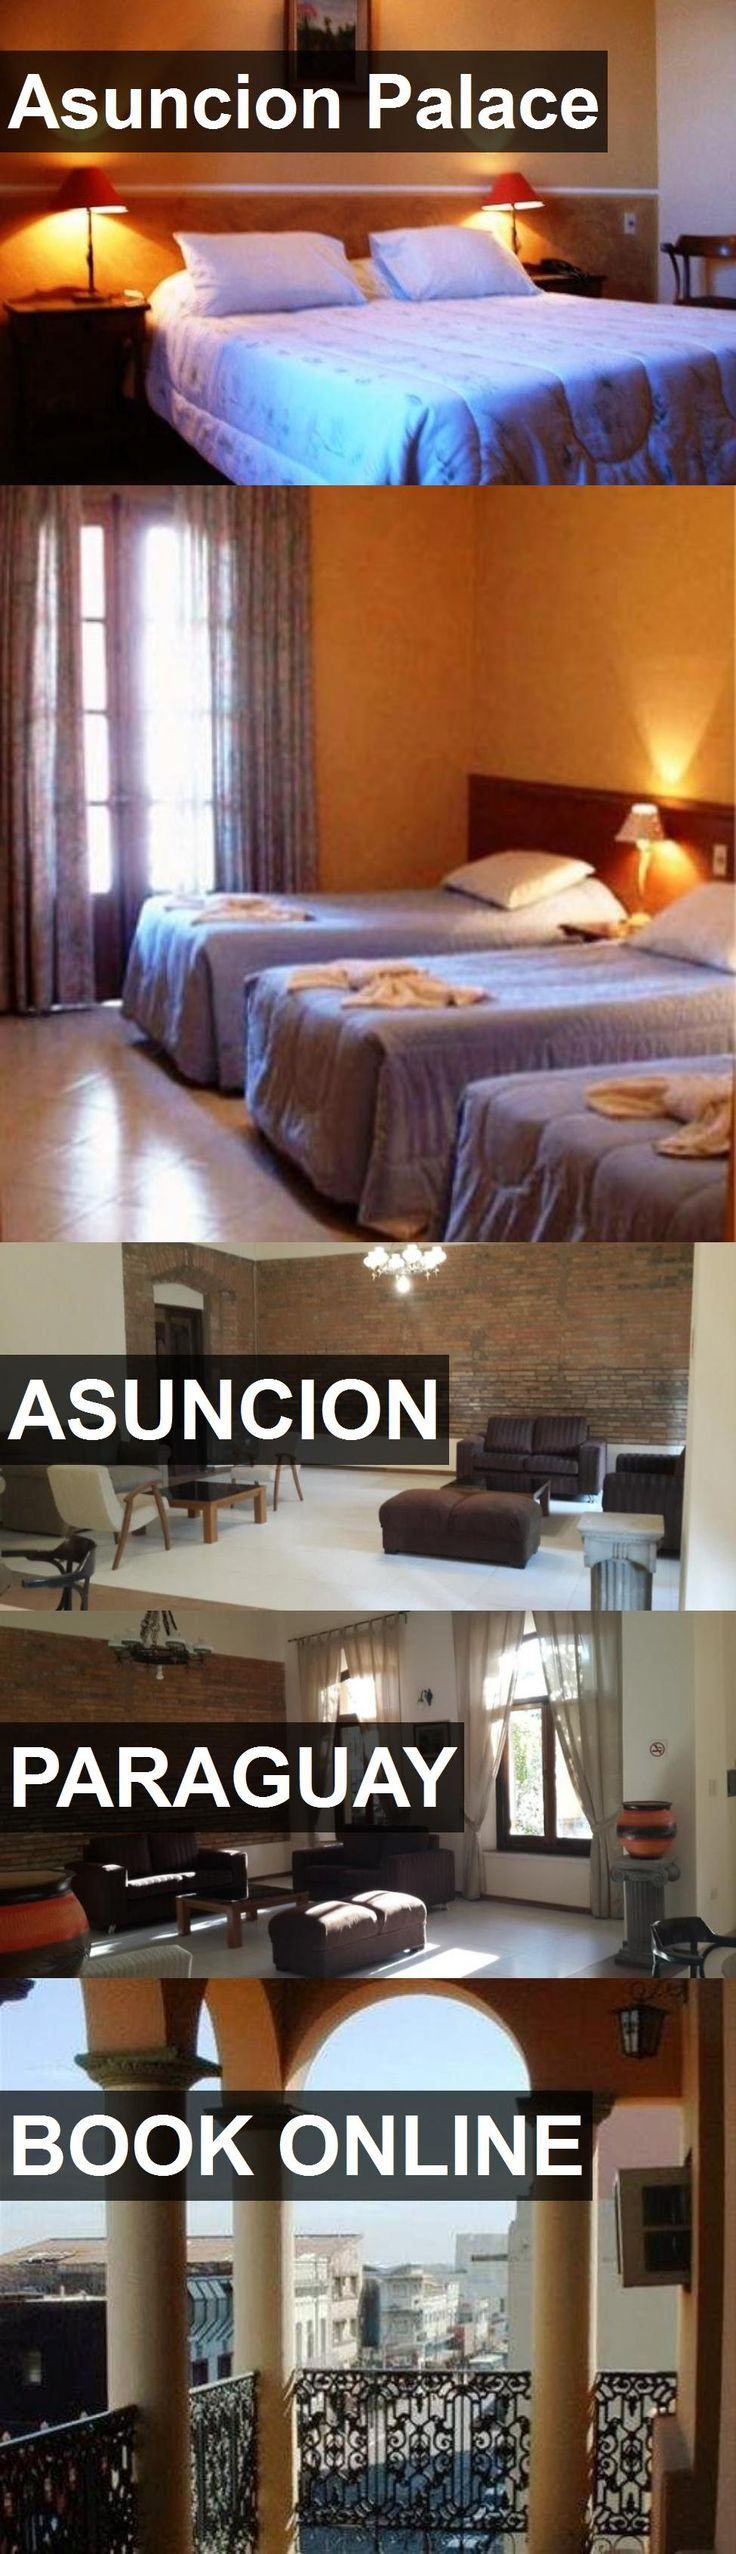 Hotel Asuncion Palace in Asuncion, Paraguay. For more information, photos, reviews and best prices please follow the link. #Paraguay #Asuncion #AsuncionPalace #hotel #travel #vacation